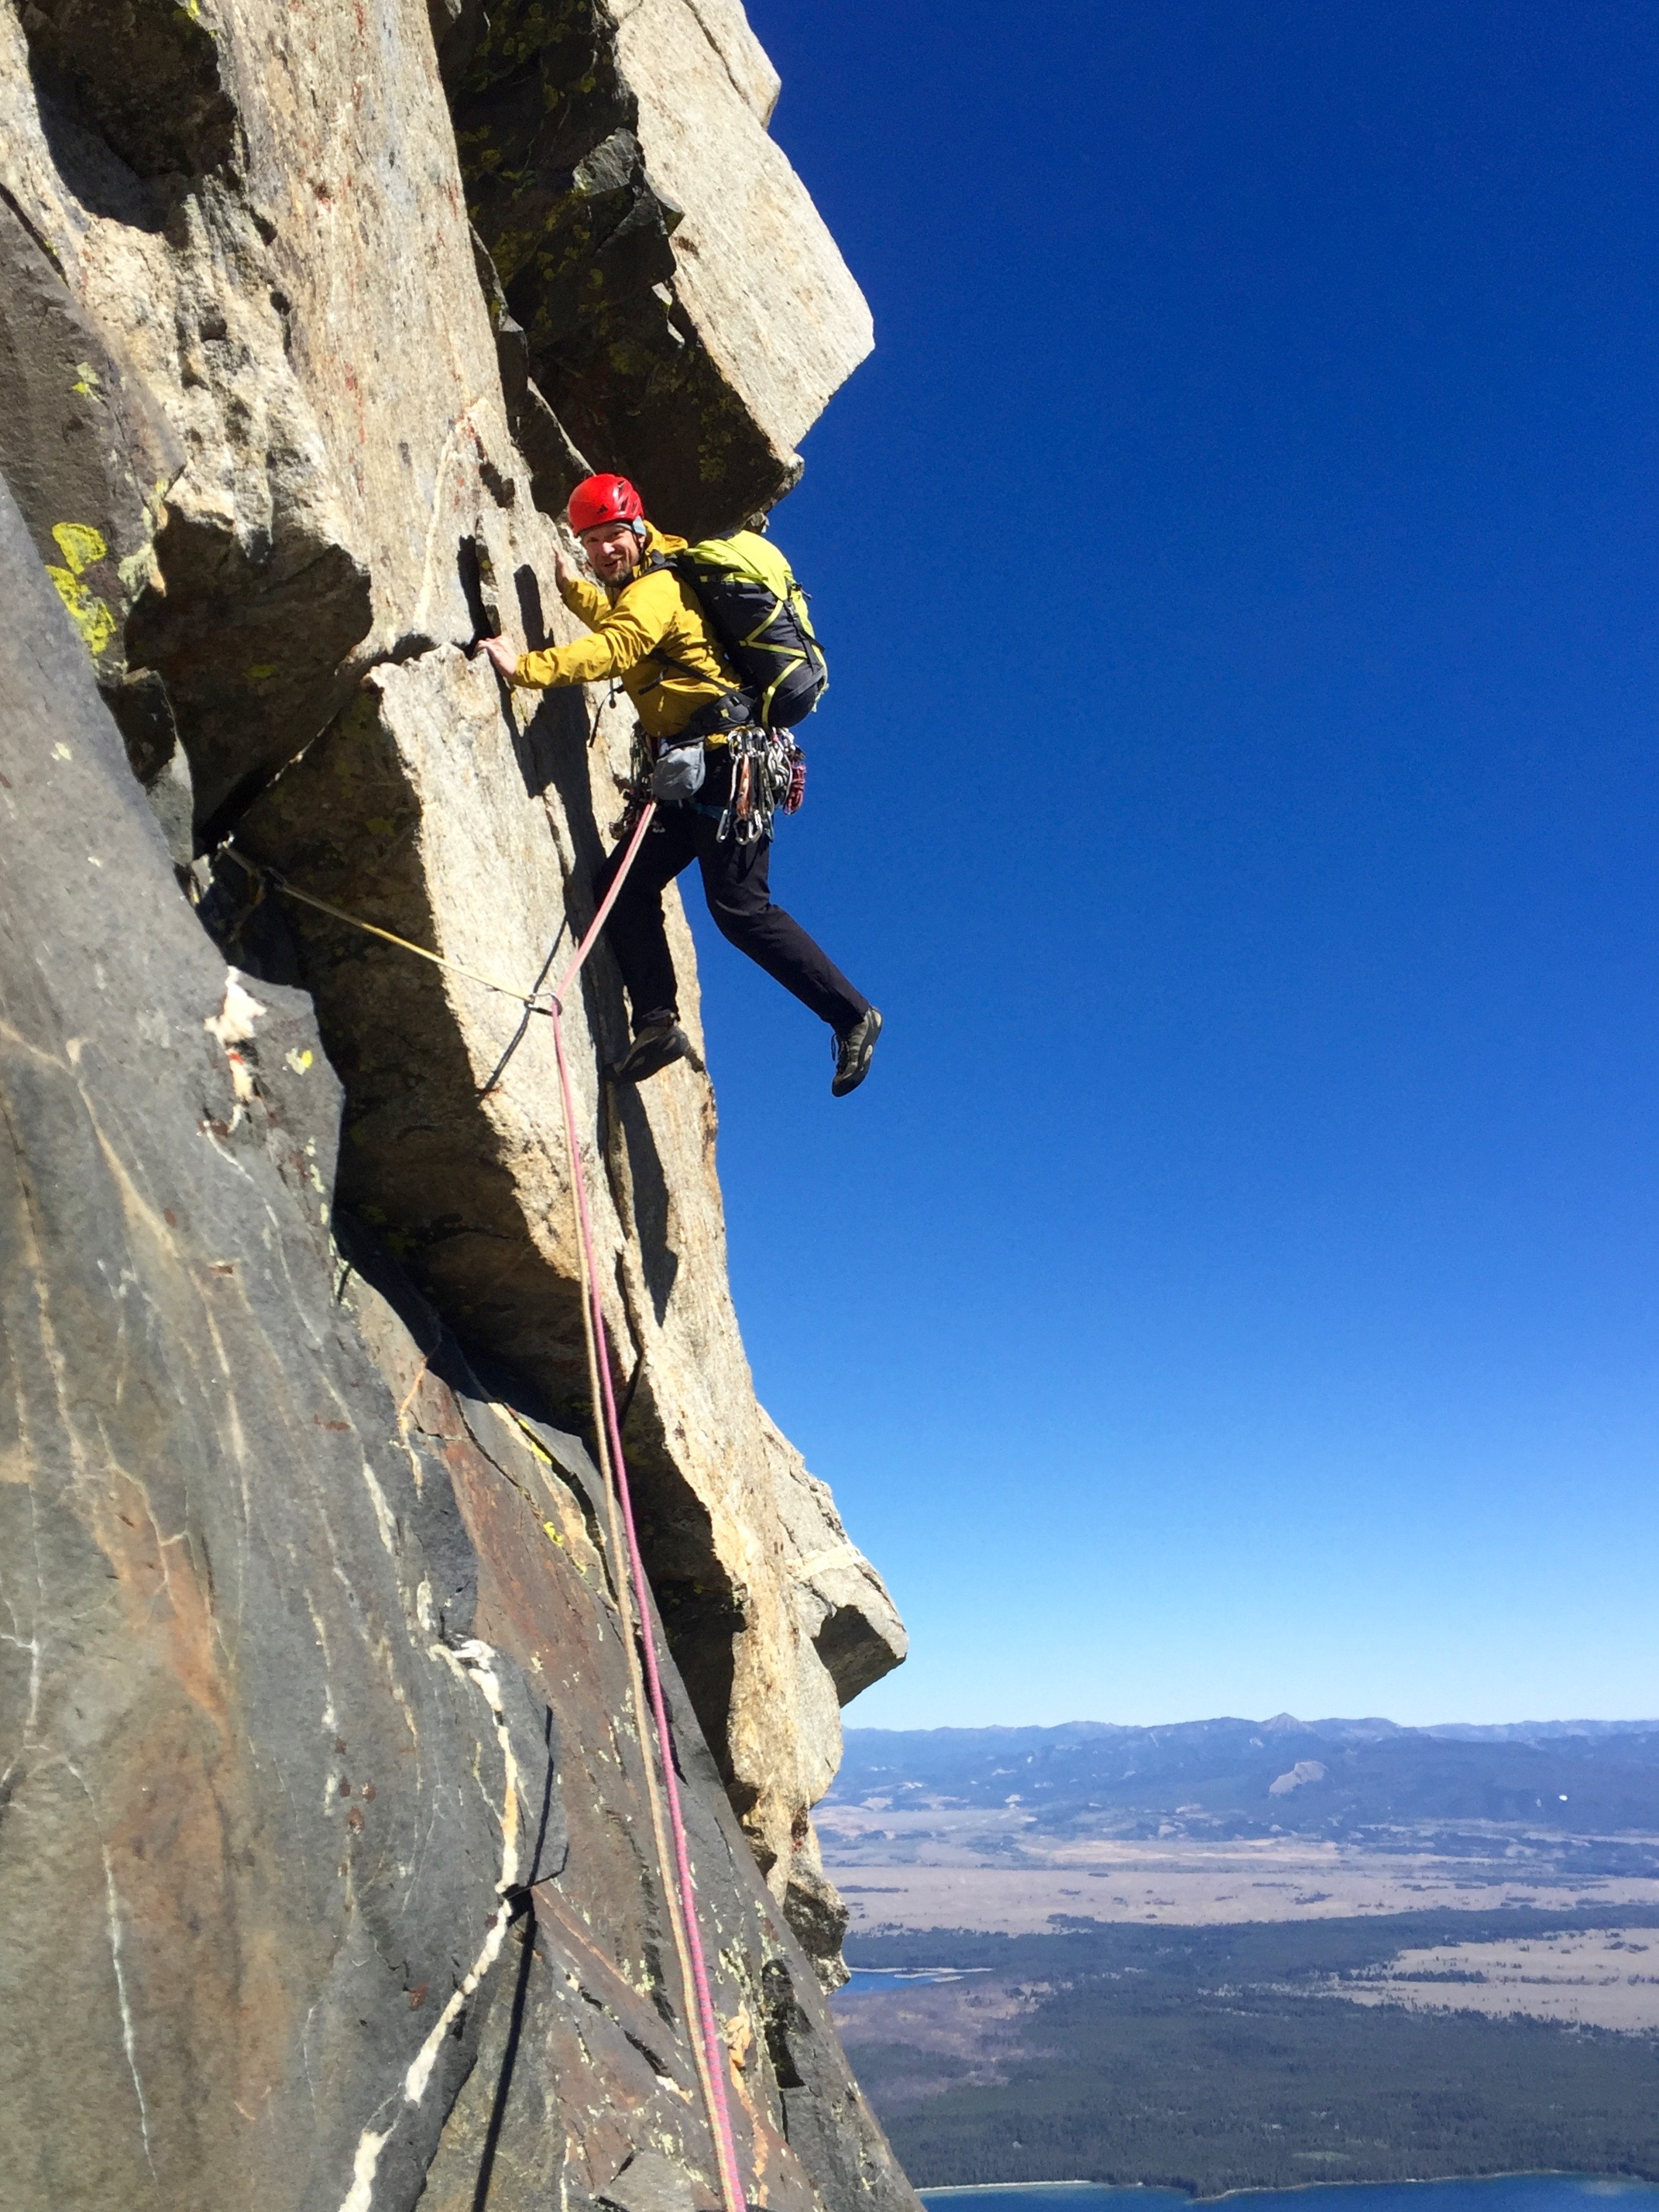 The last pitch of the DSB route was a 5.5 super exposed hand traverse. Jeff made some great poses on the lead!